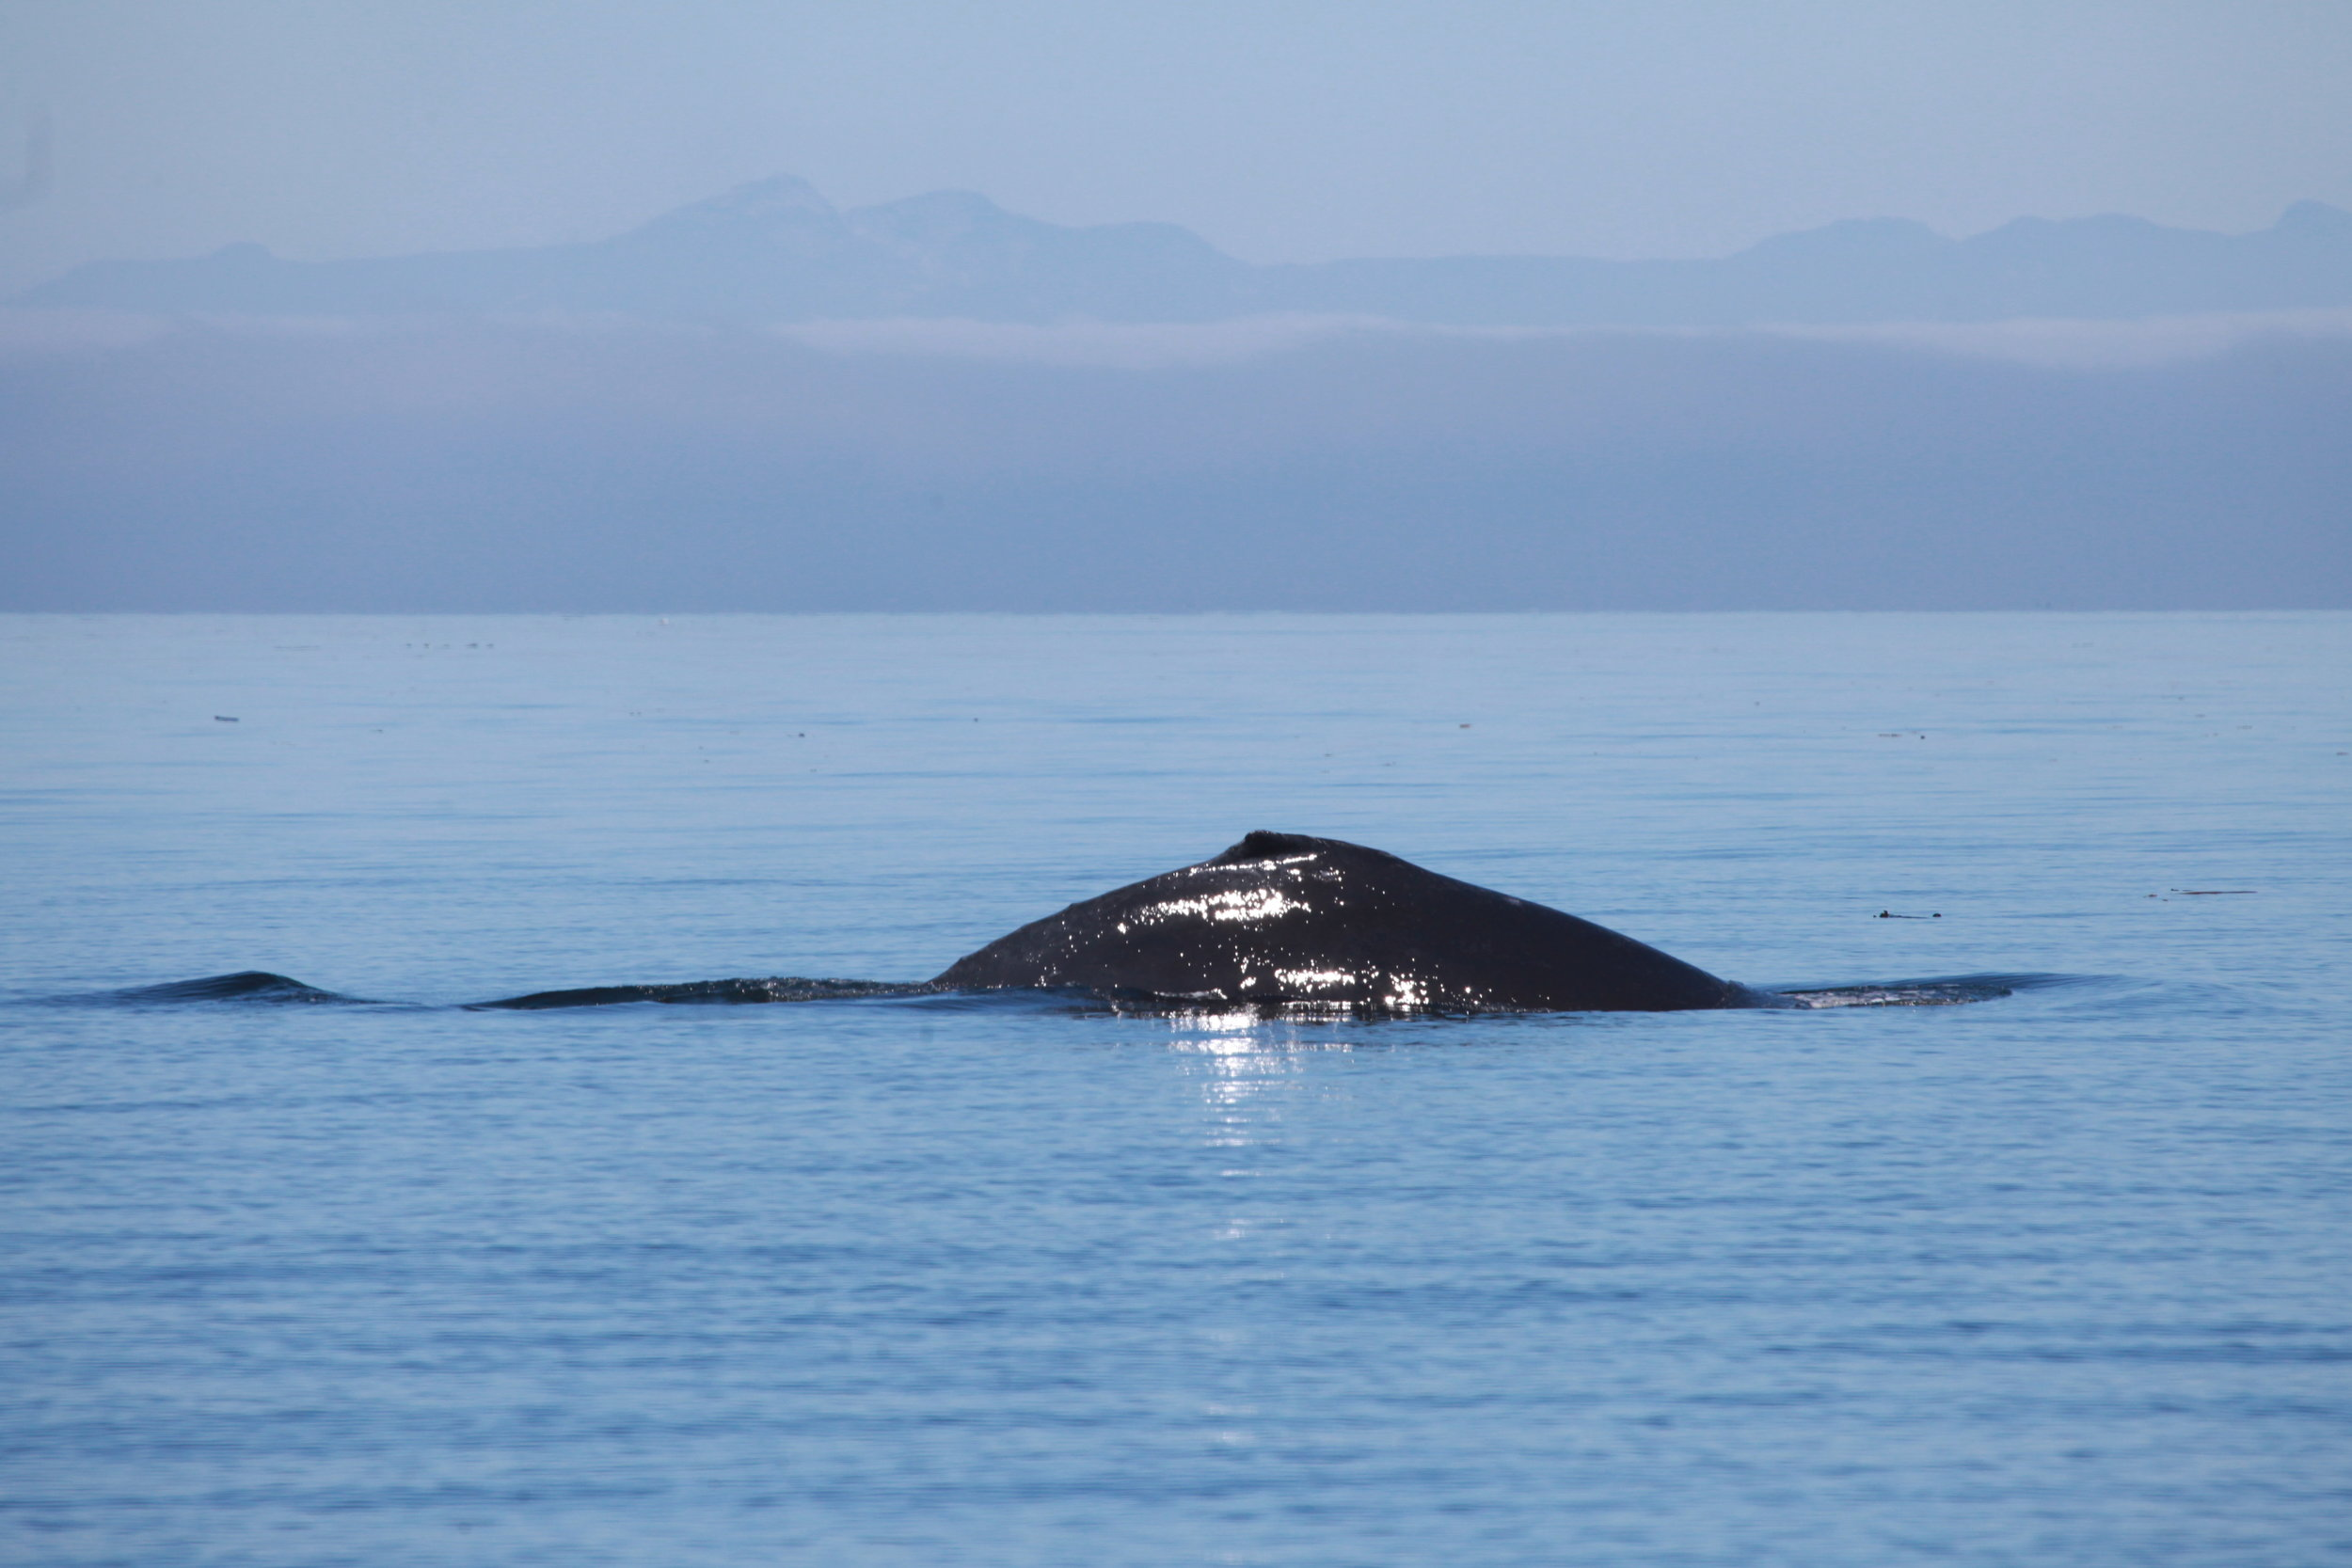 Whale watching in the Queen Charlotte Strait today.